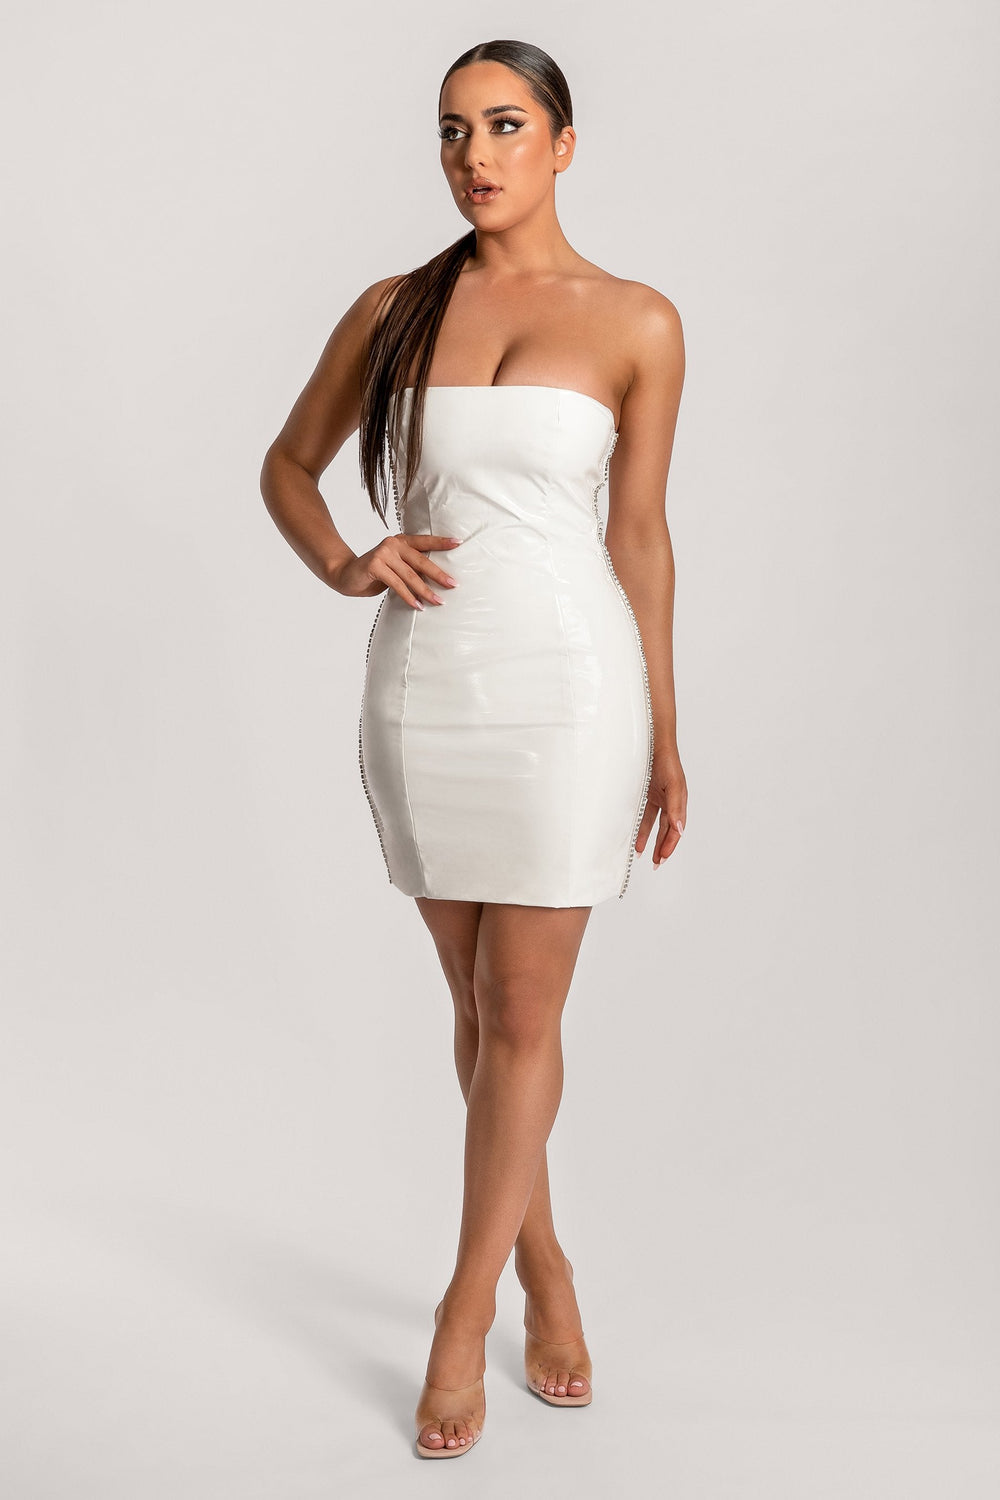 Liza Diamante Side Trim Latex Strapless Dress - White - MESHKI ?id=16030653612107